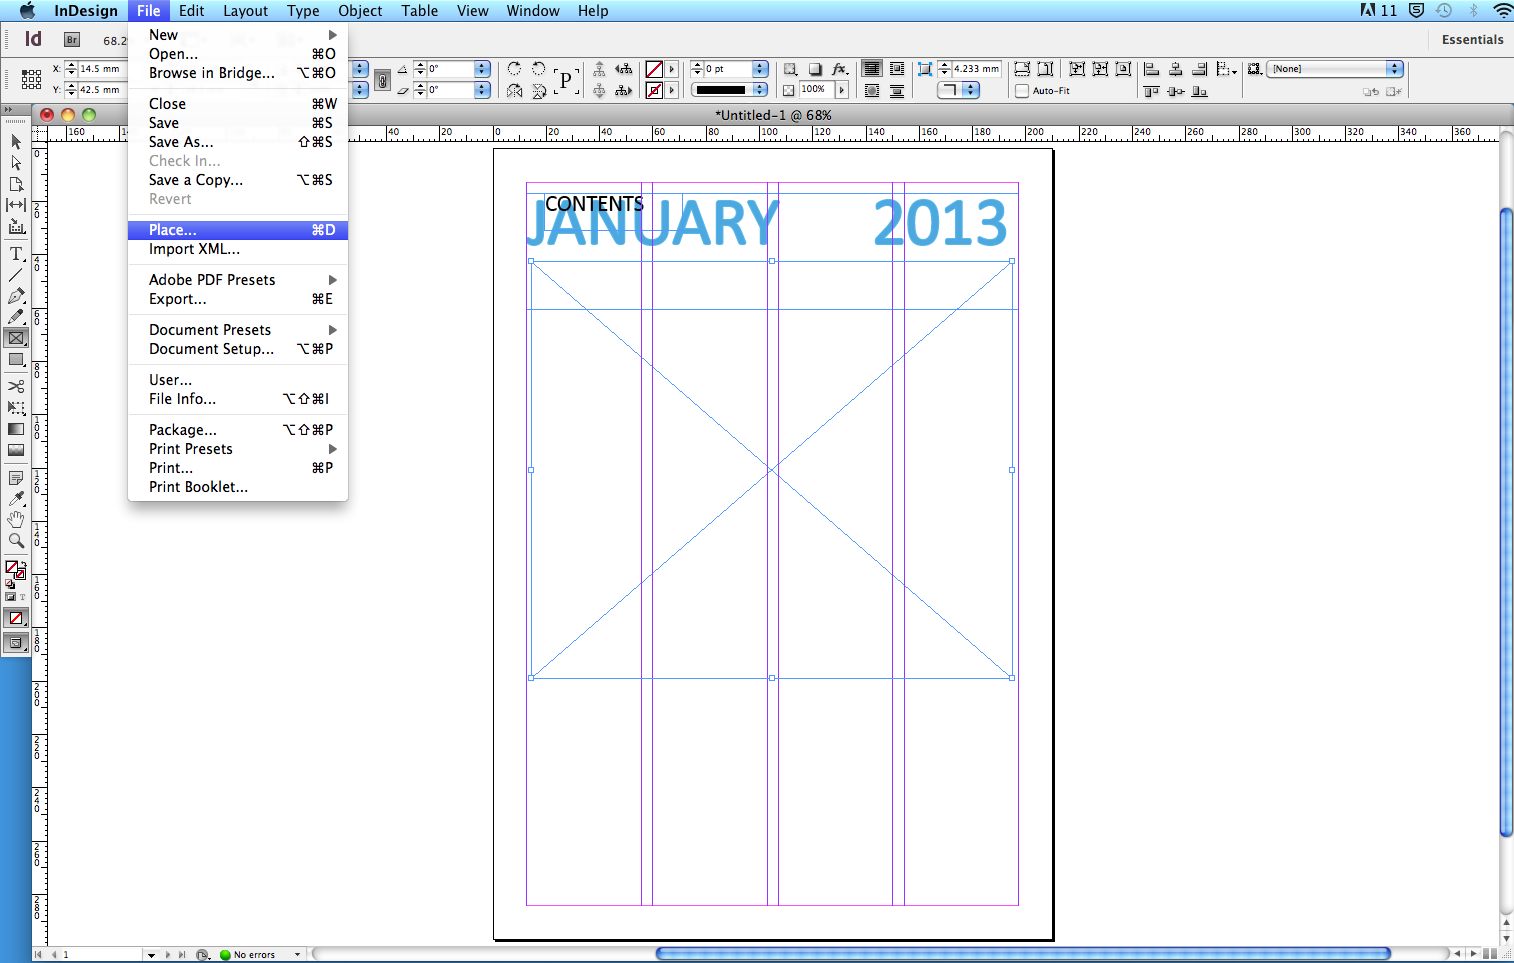 indesign inserting pages from another document